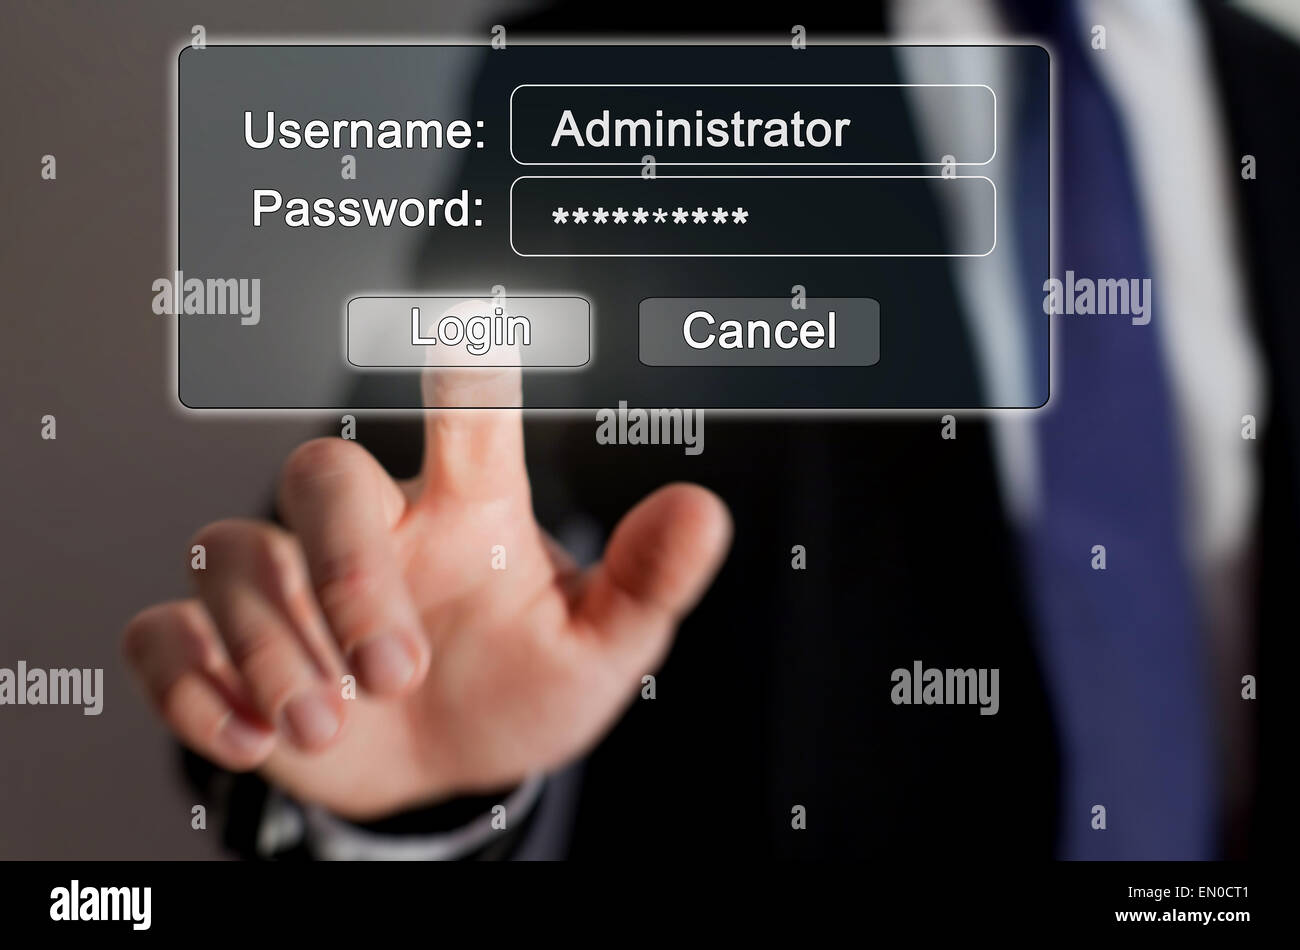 internet security, authorization page online - Stock Image